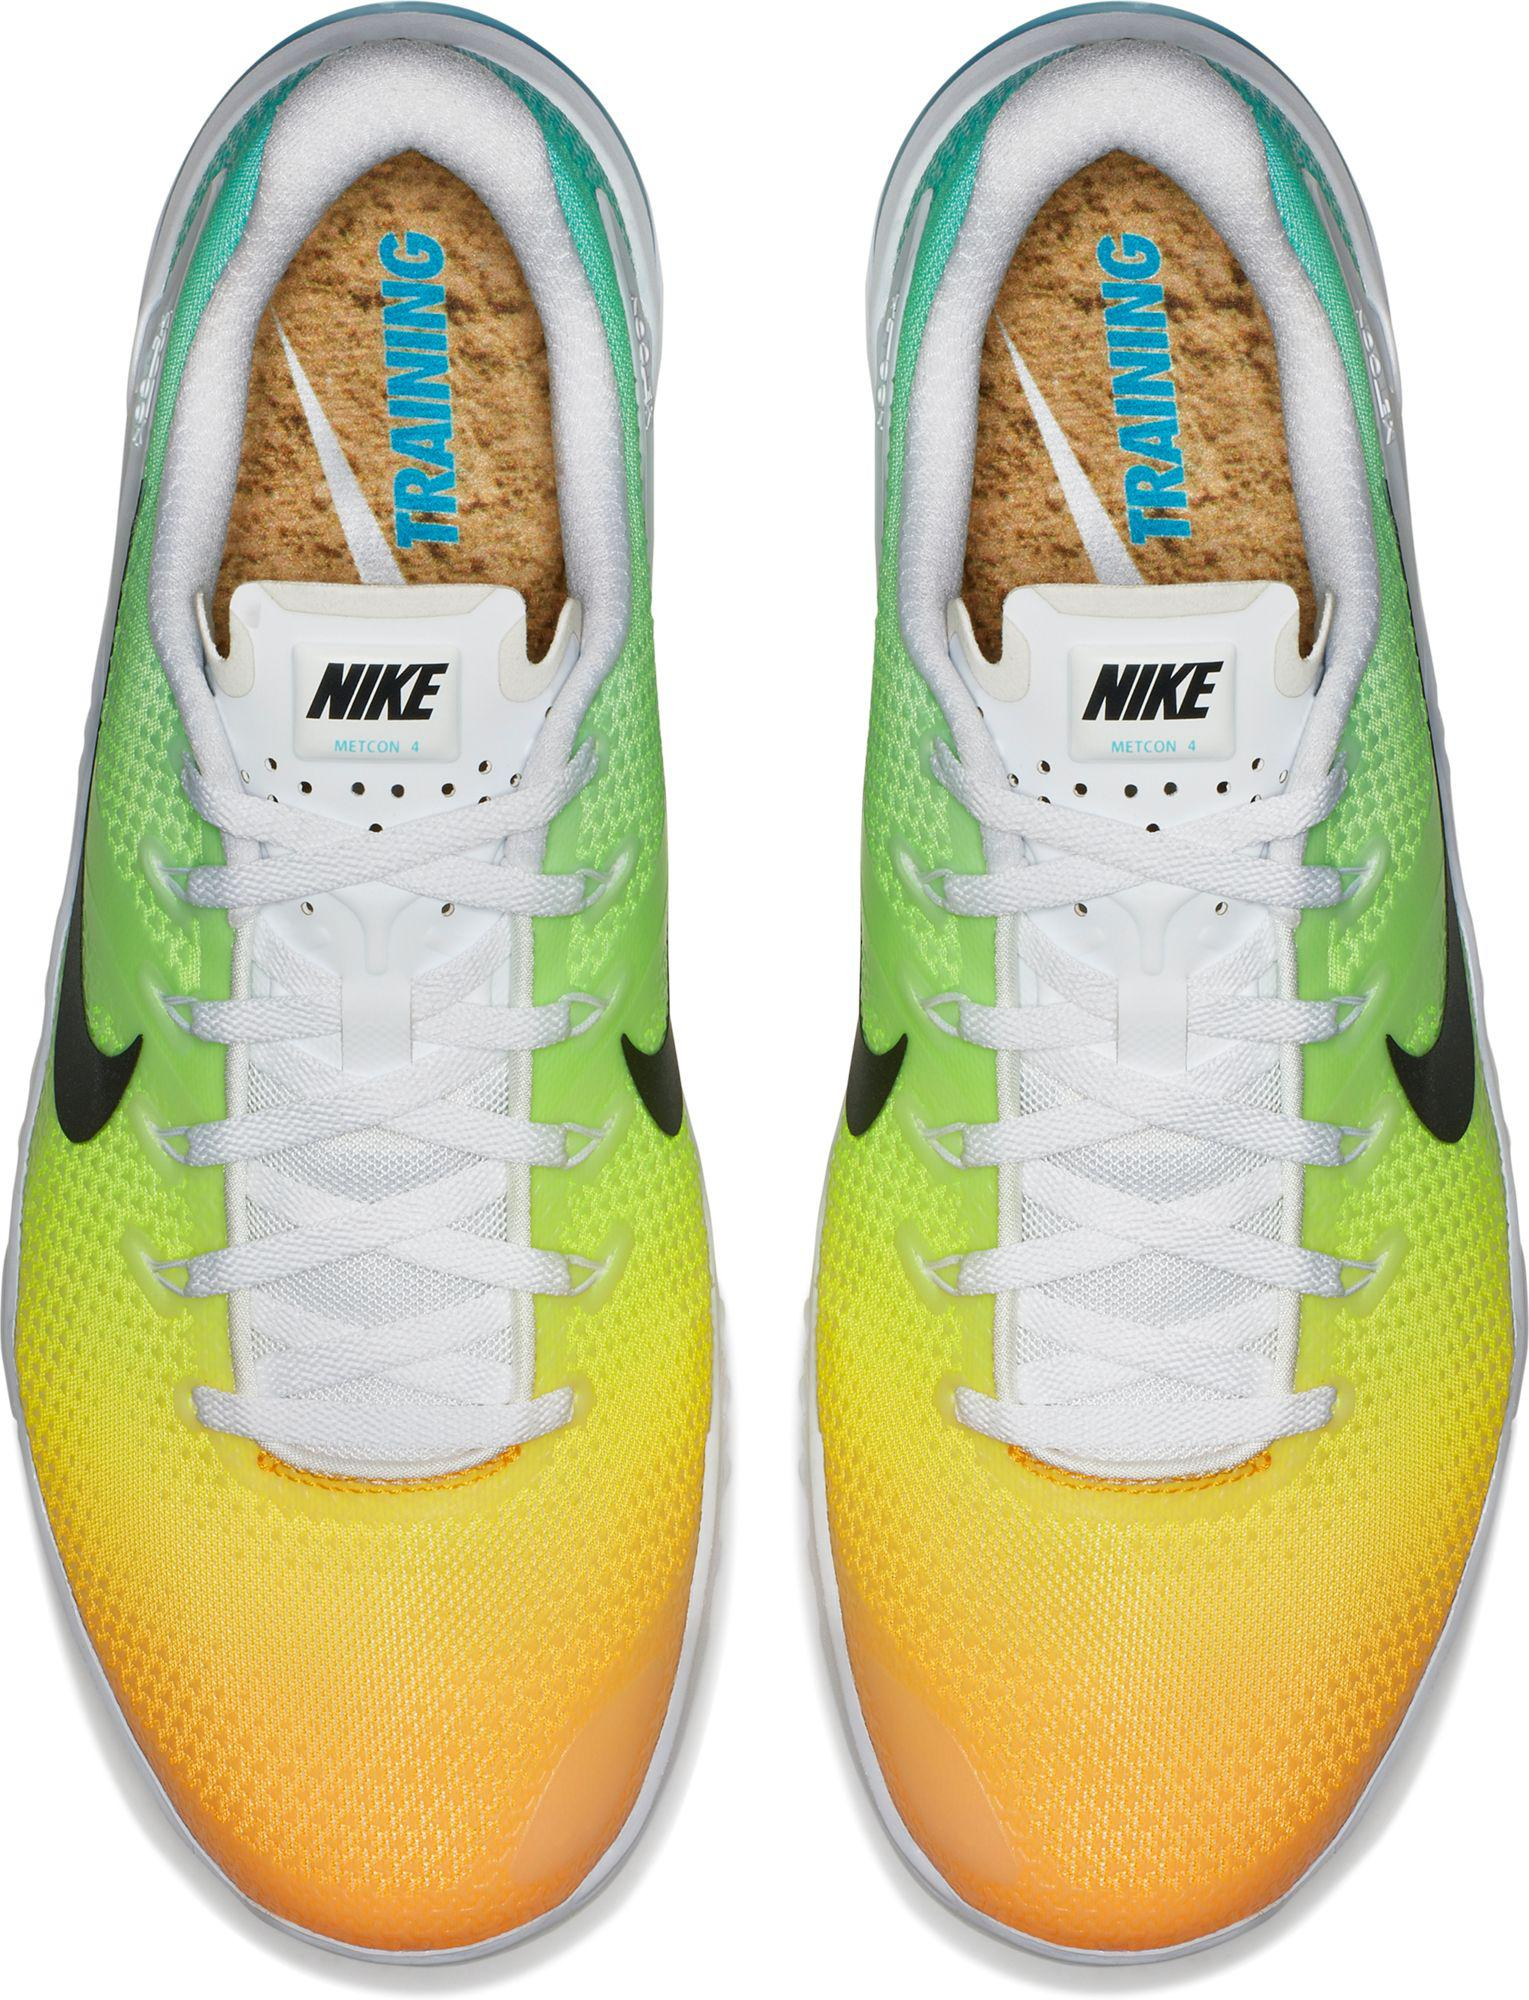 Nike Rubber Metcon 4 Training Shoes for